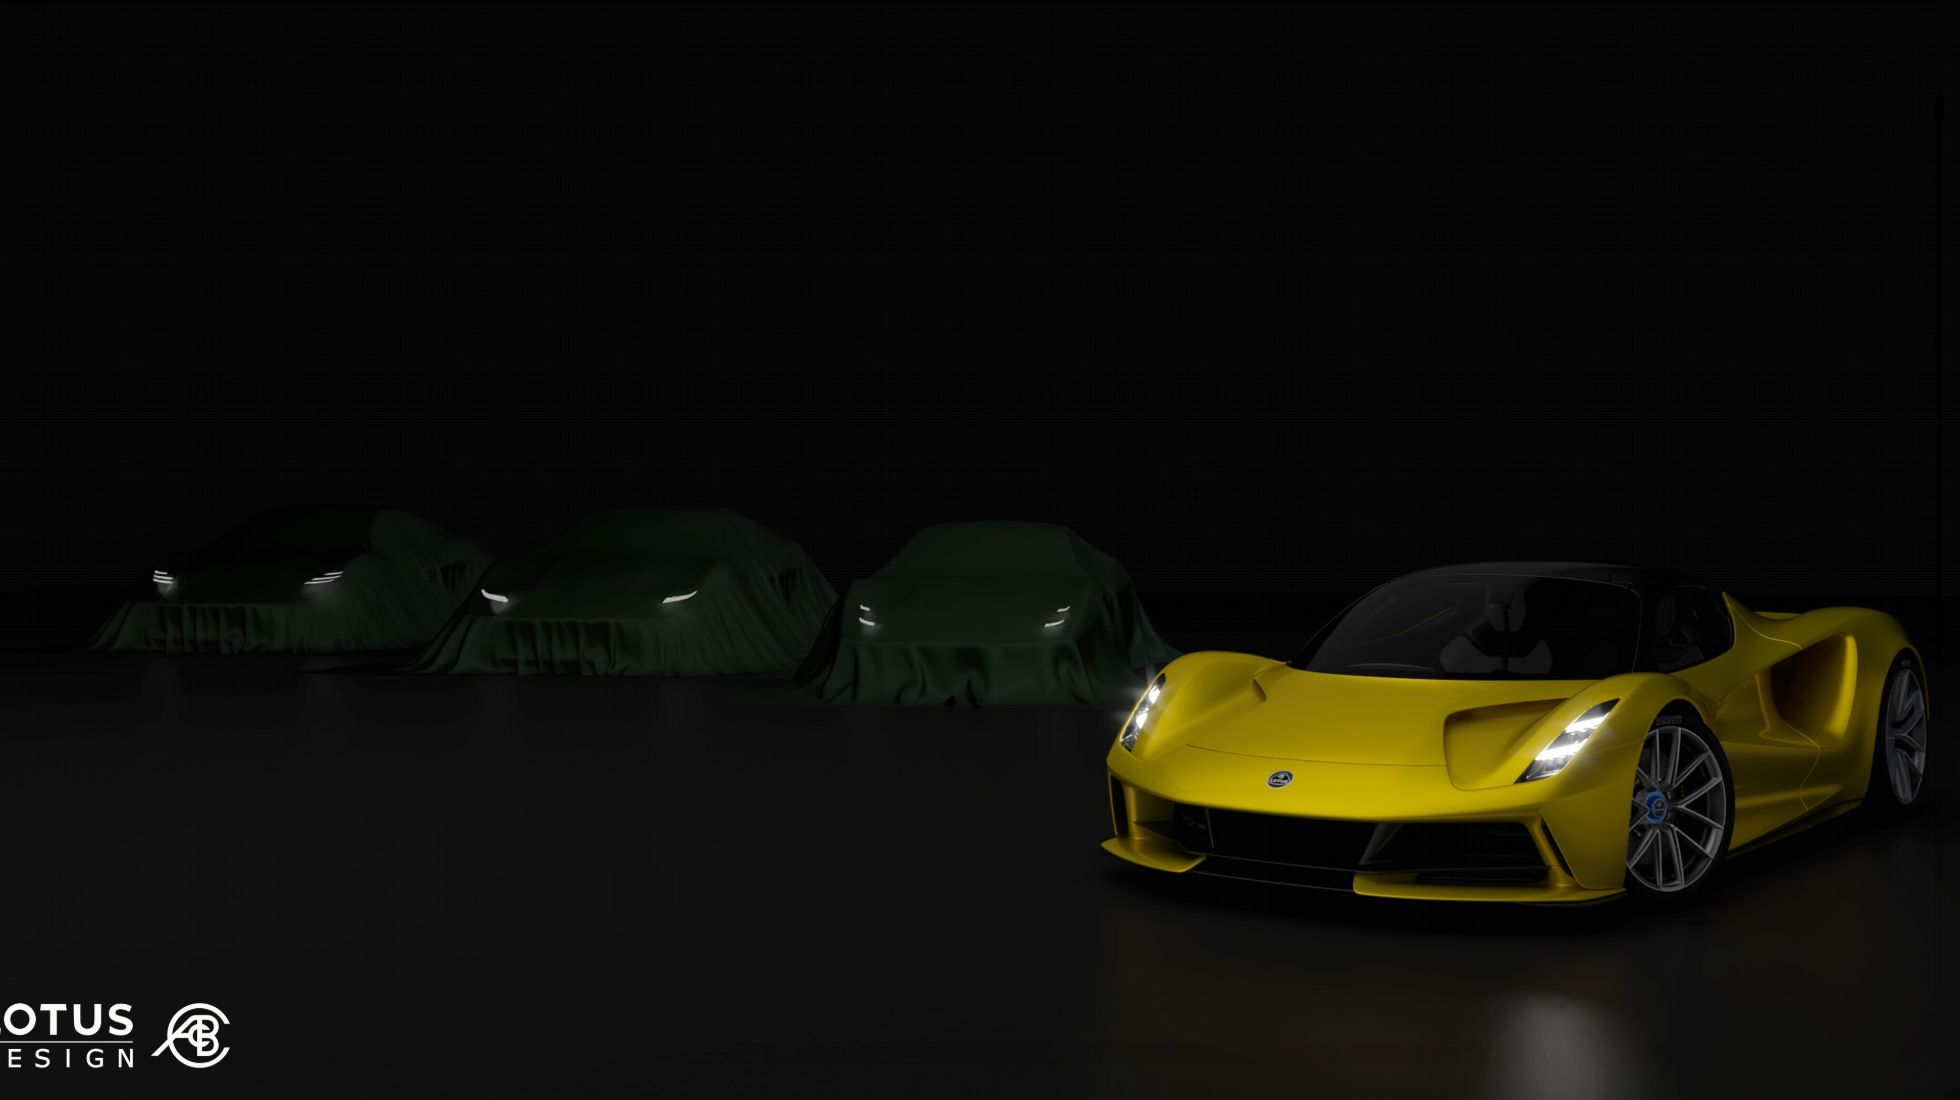 Lotus announces imminent end of road for Elise, Exige and Evora